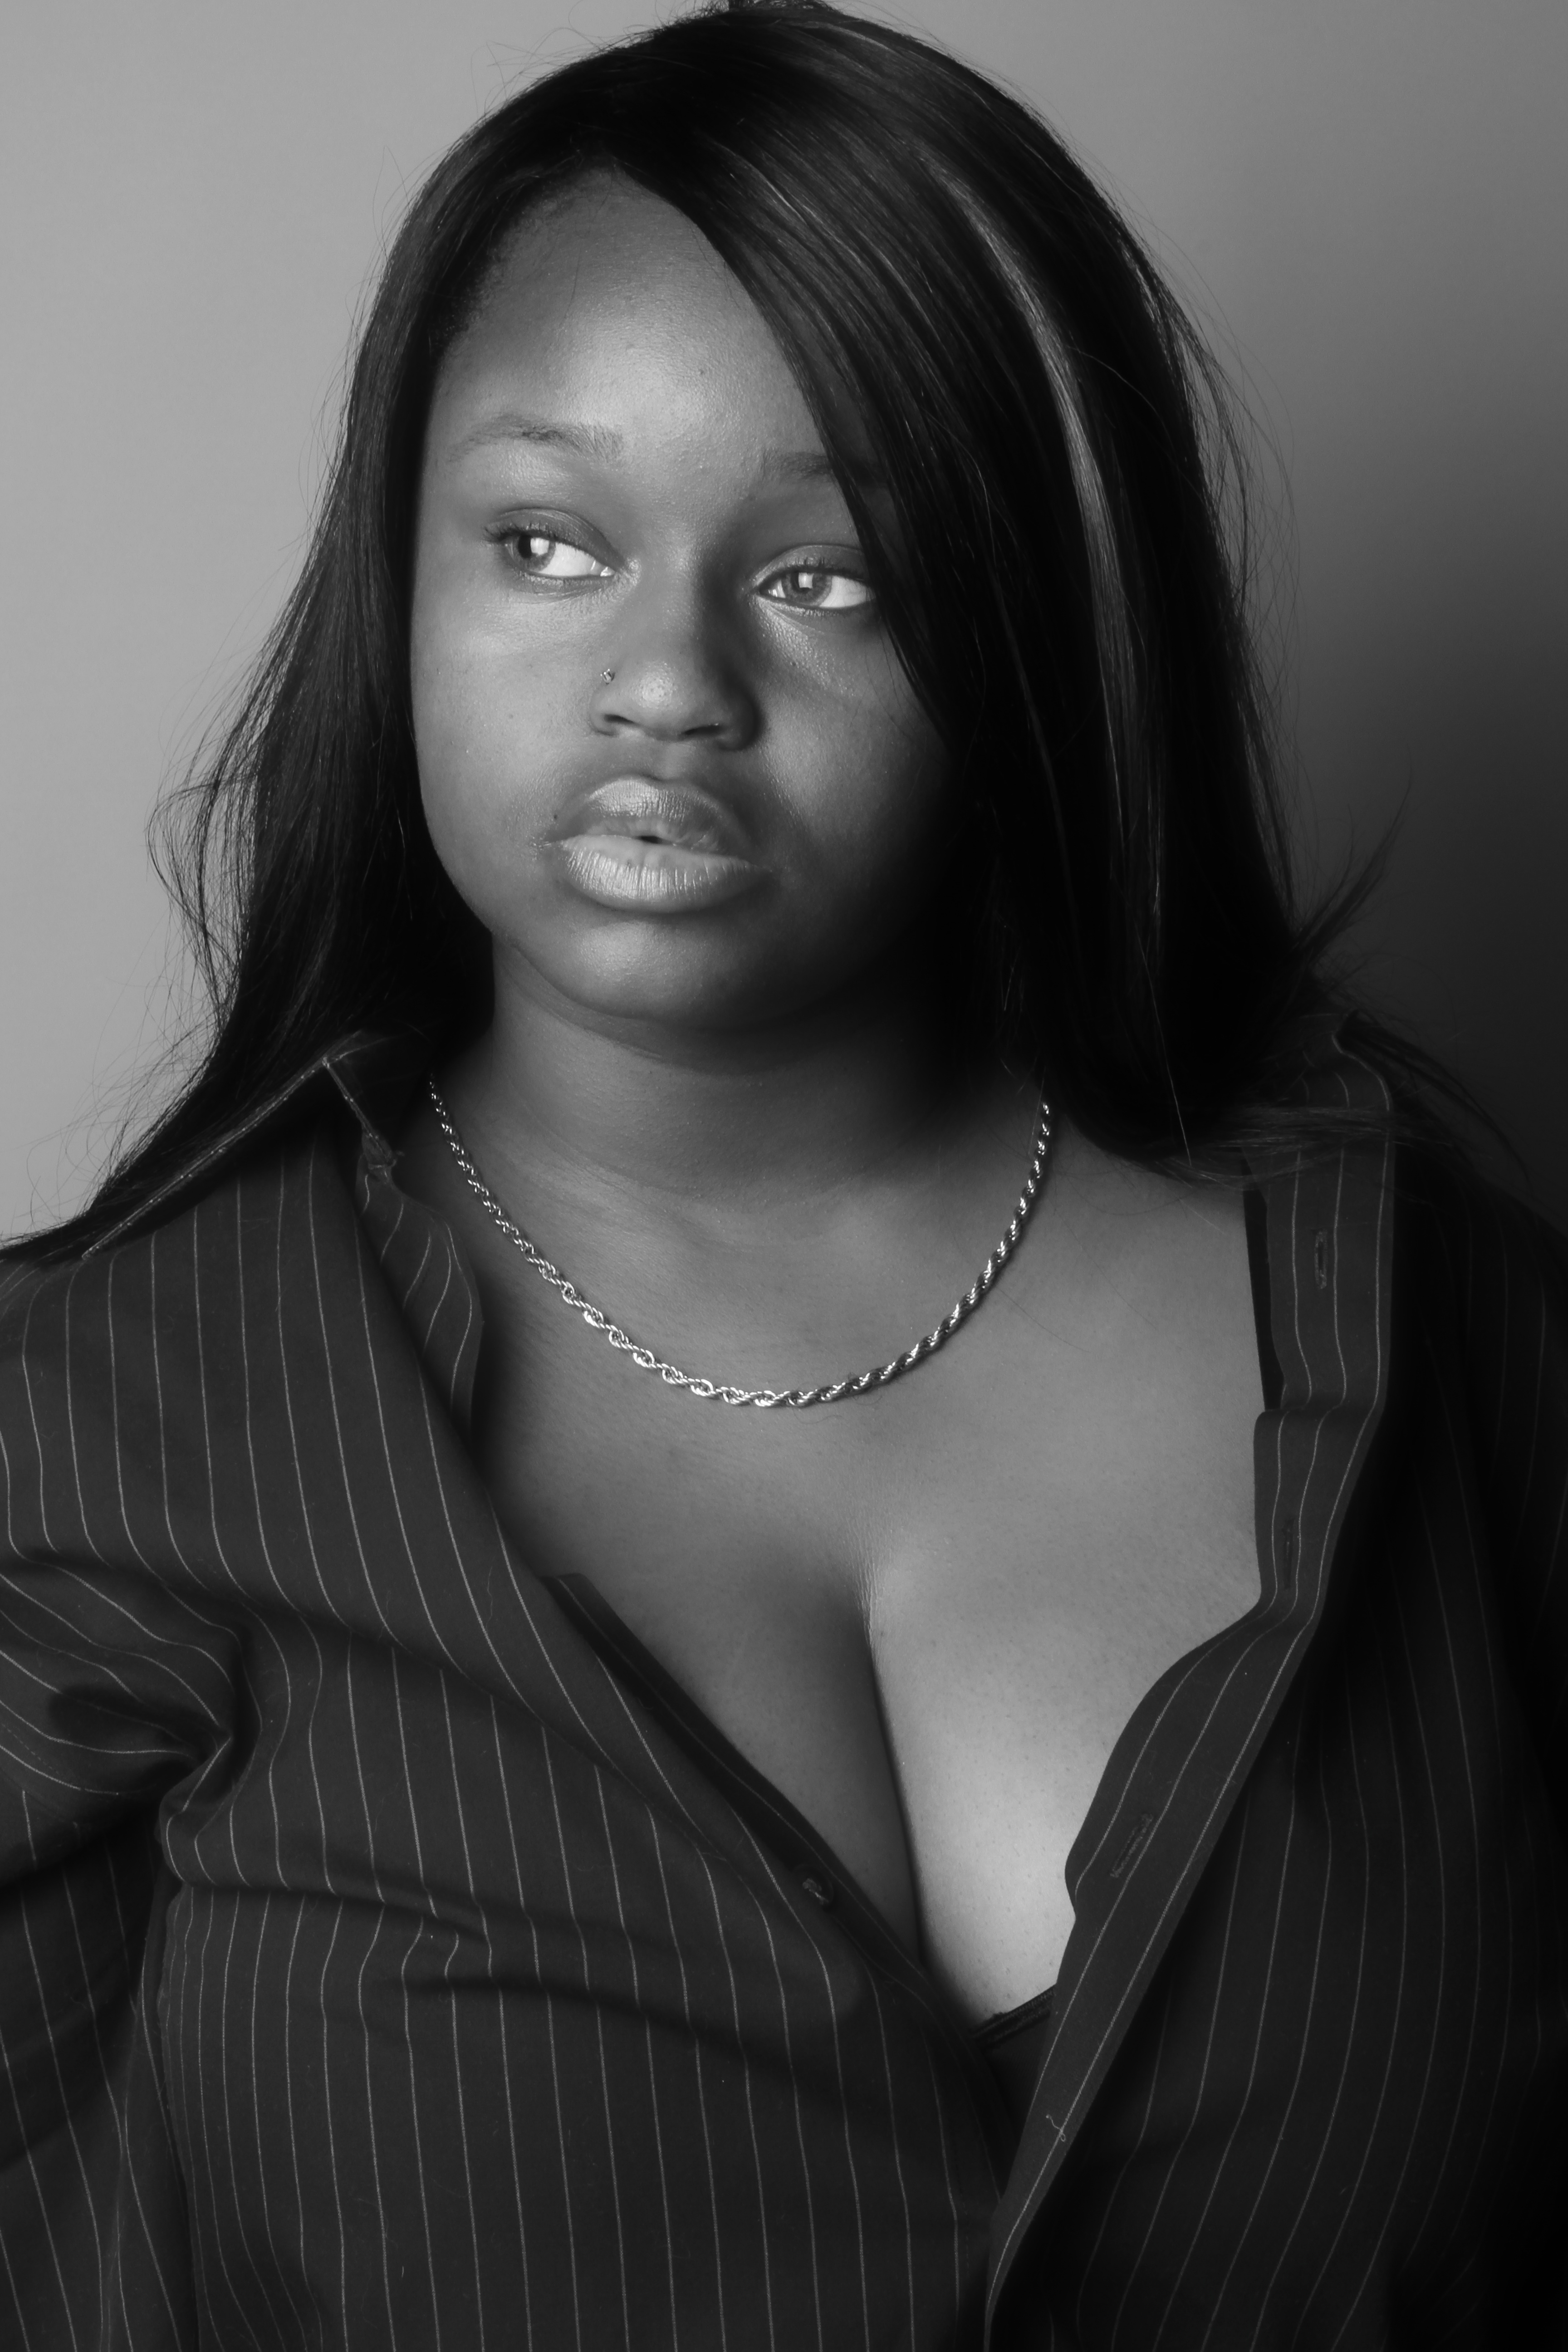 ... Ebony, Eyes, Head Shots, Model, Monochrome, Portrait, Portraits, ...